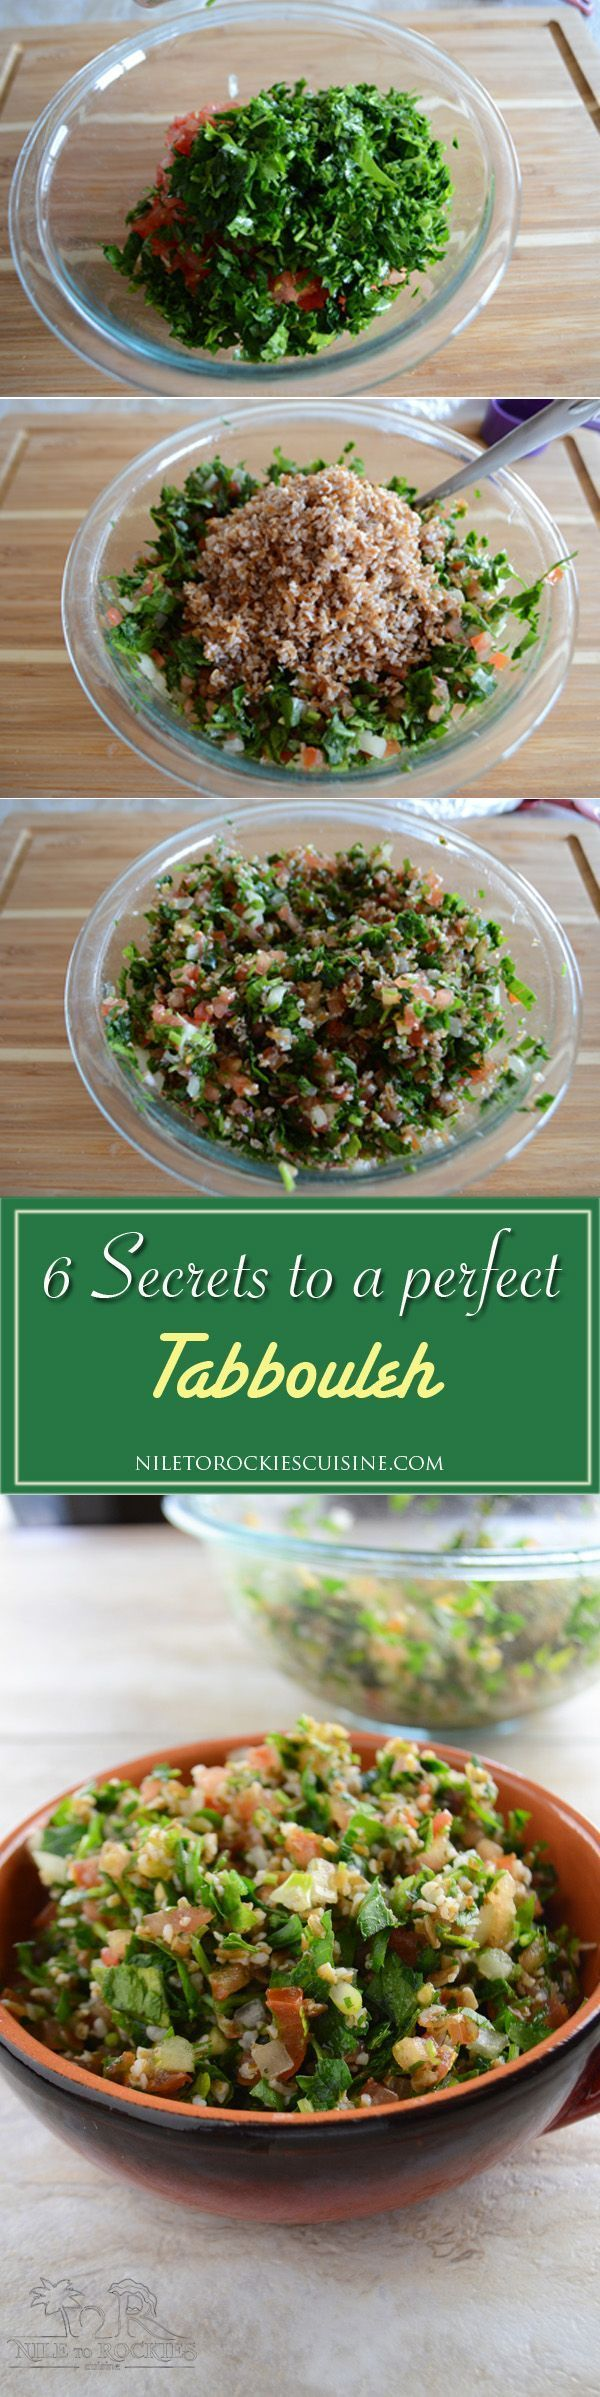 Tabbouleh is probably the most famous recipe in the Lebanese cuisine. As many s